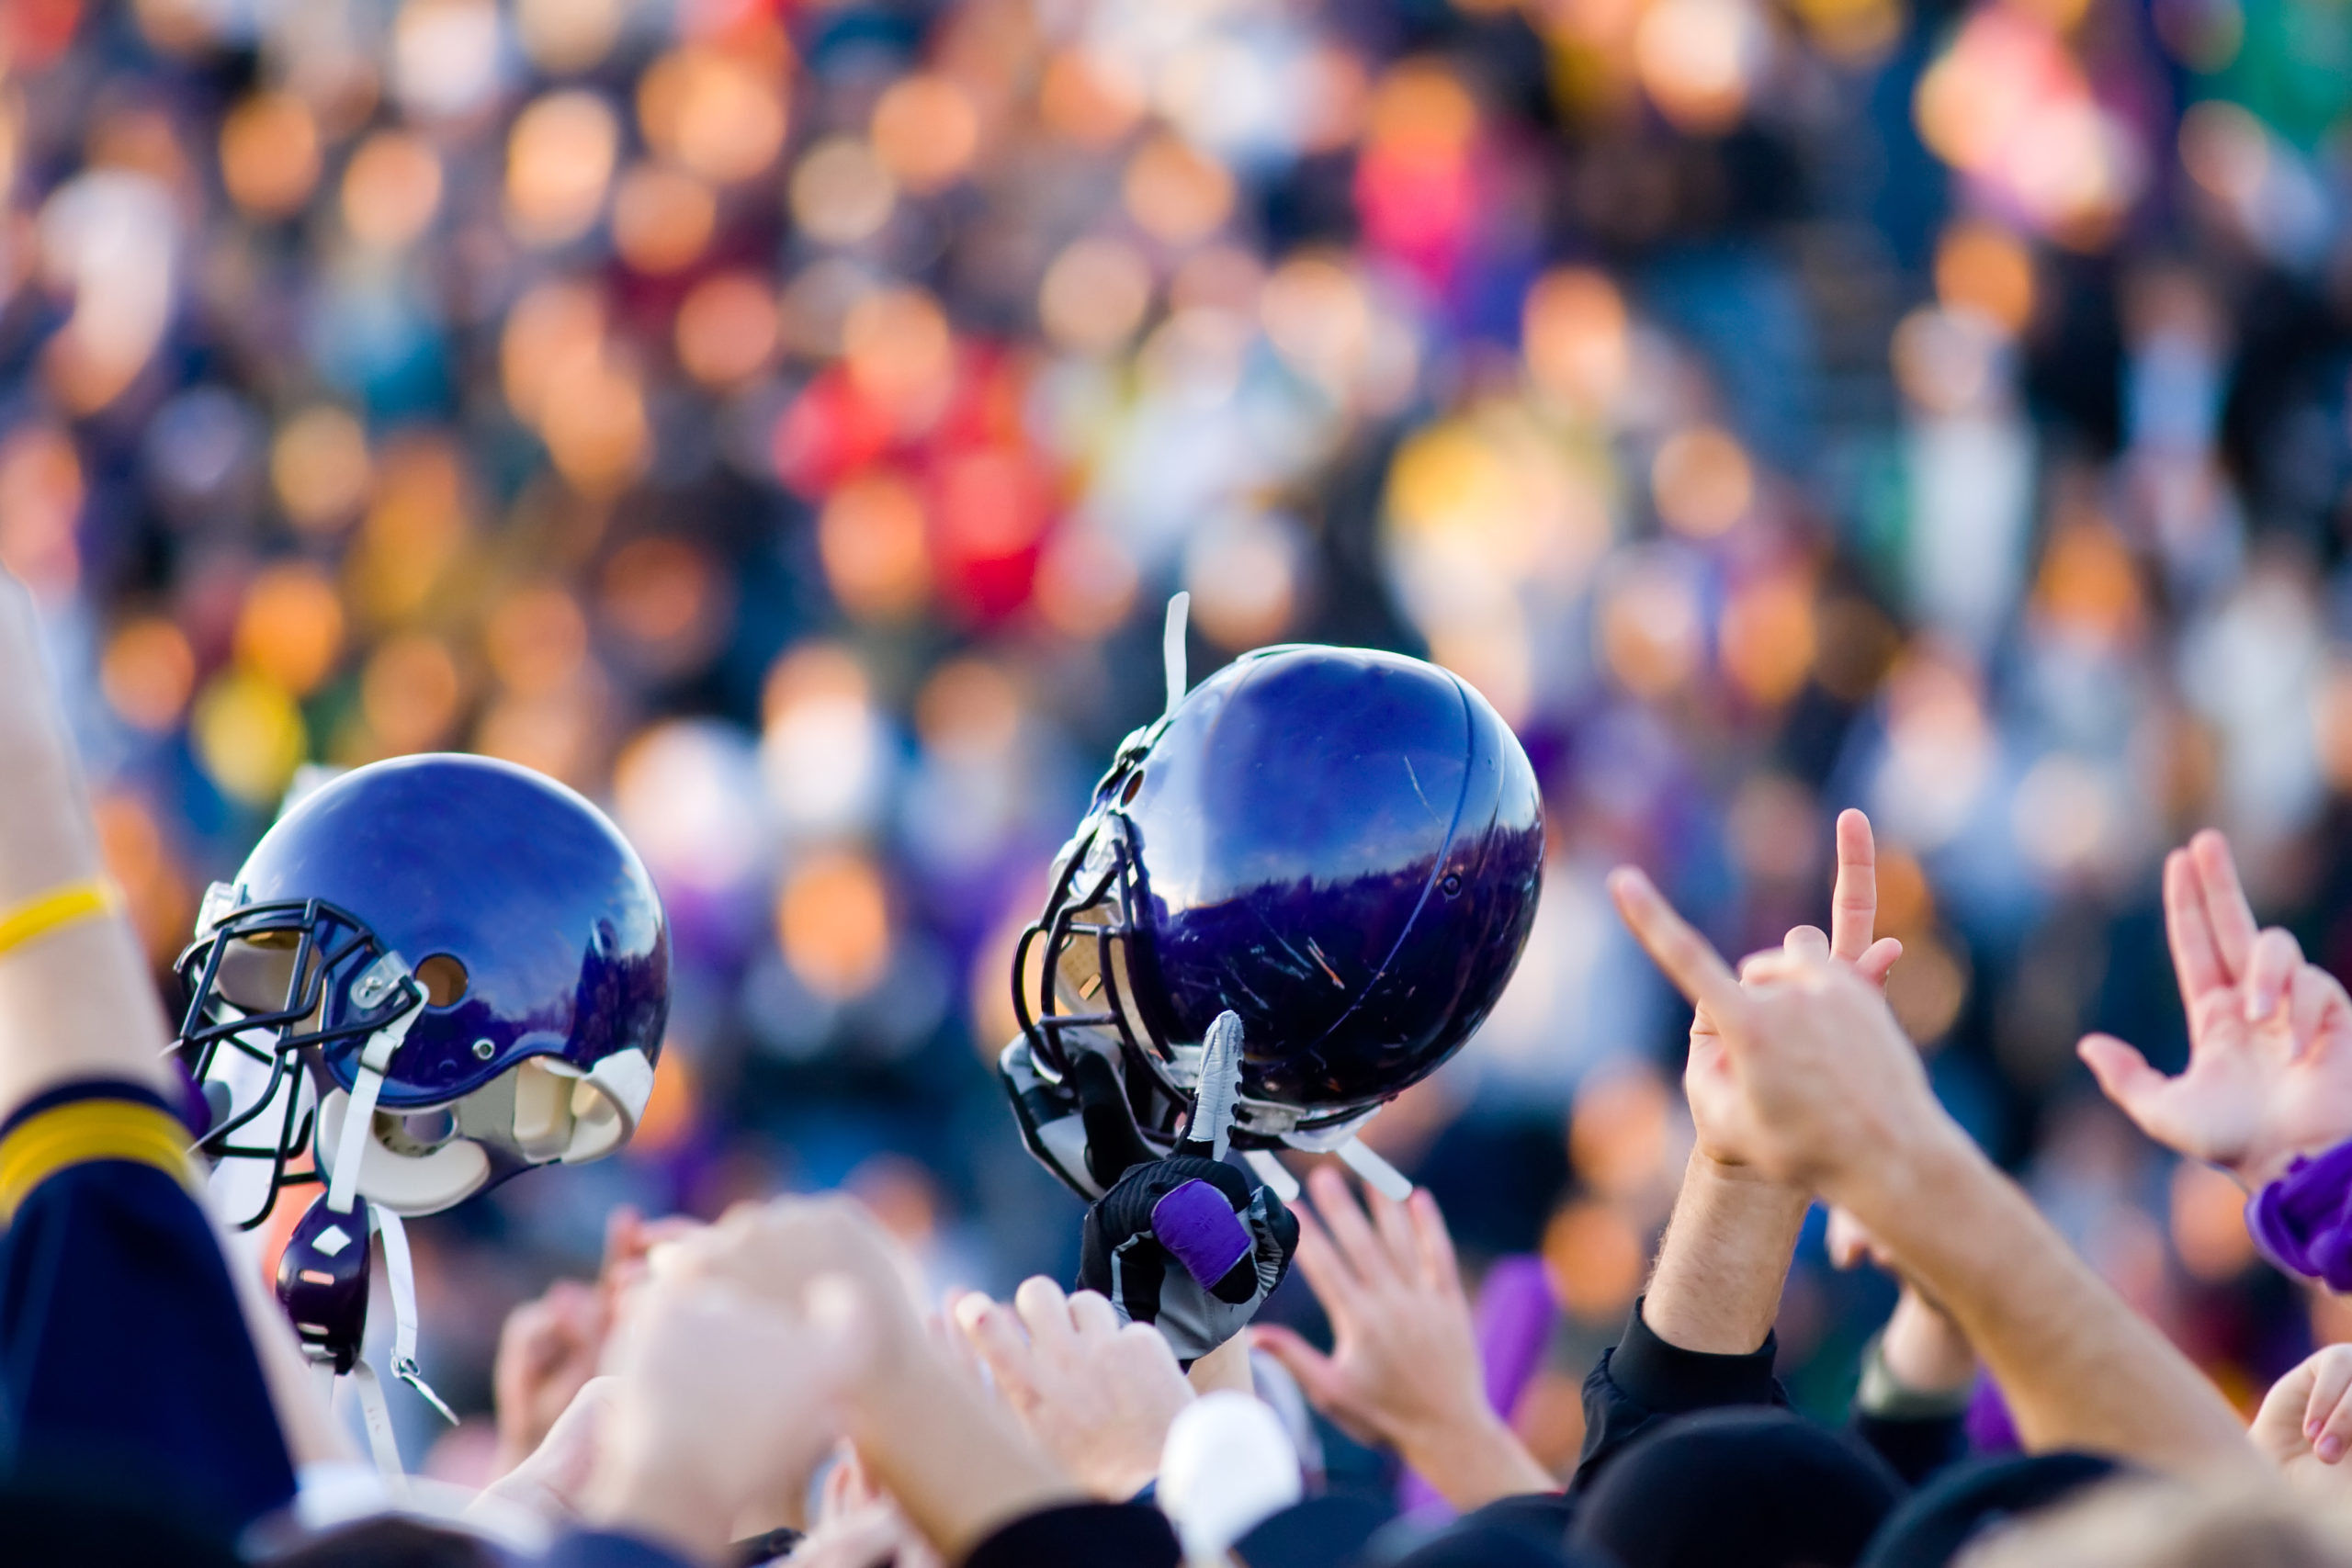 Close up of blue football helmets held in the air in victory against a blurred crowd.